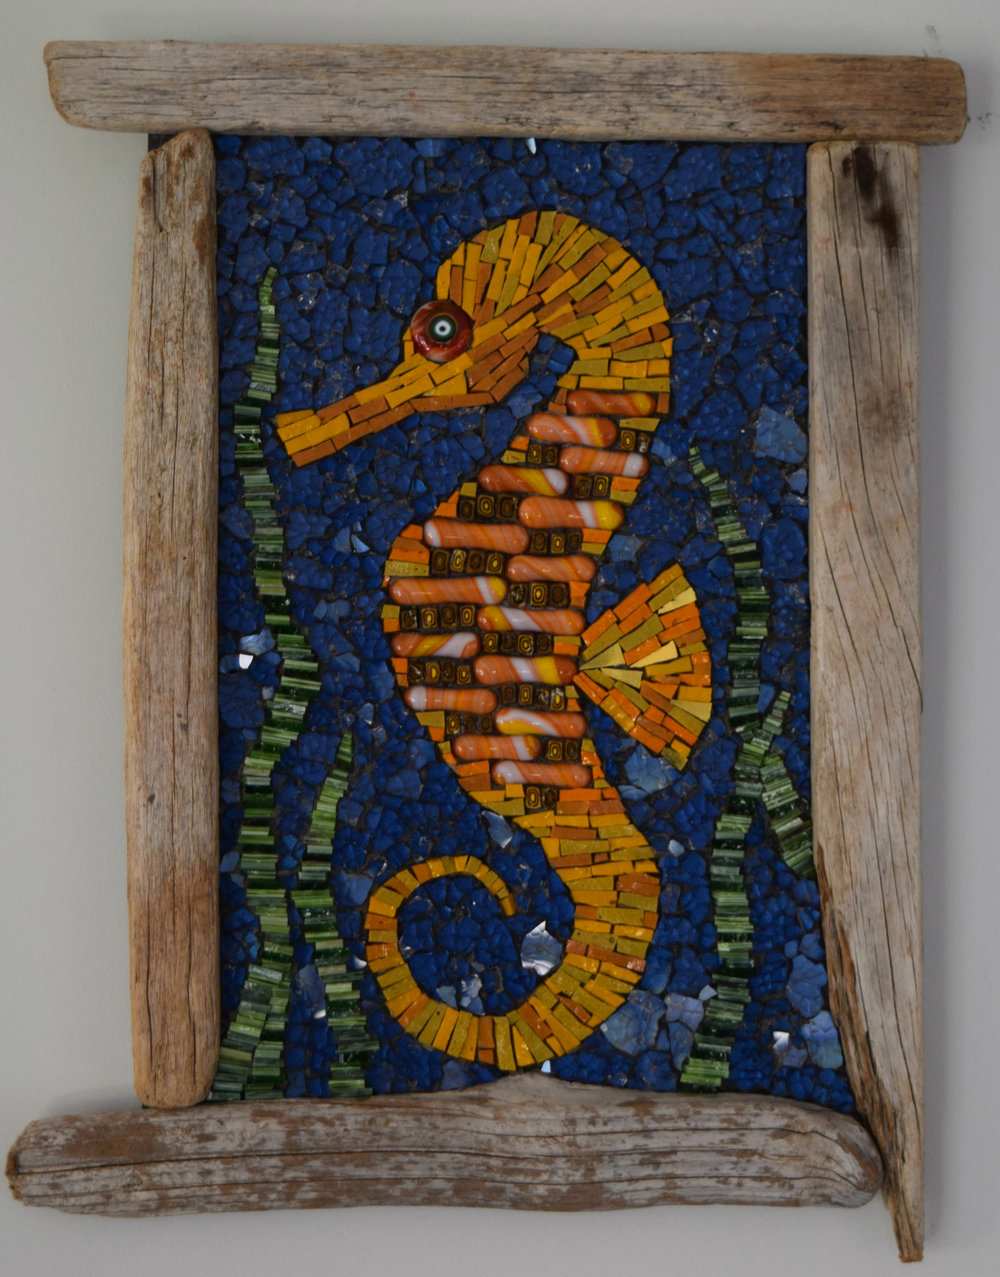 Seahorse with Drift Frame (Glass Fusions, Smalti, Millefiori, Gold Smalti, Stained Glass, tempered Glass)